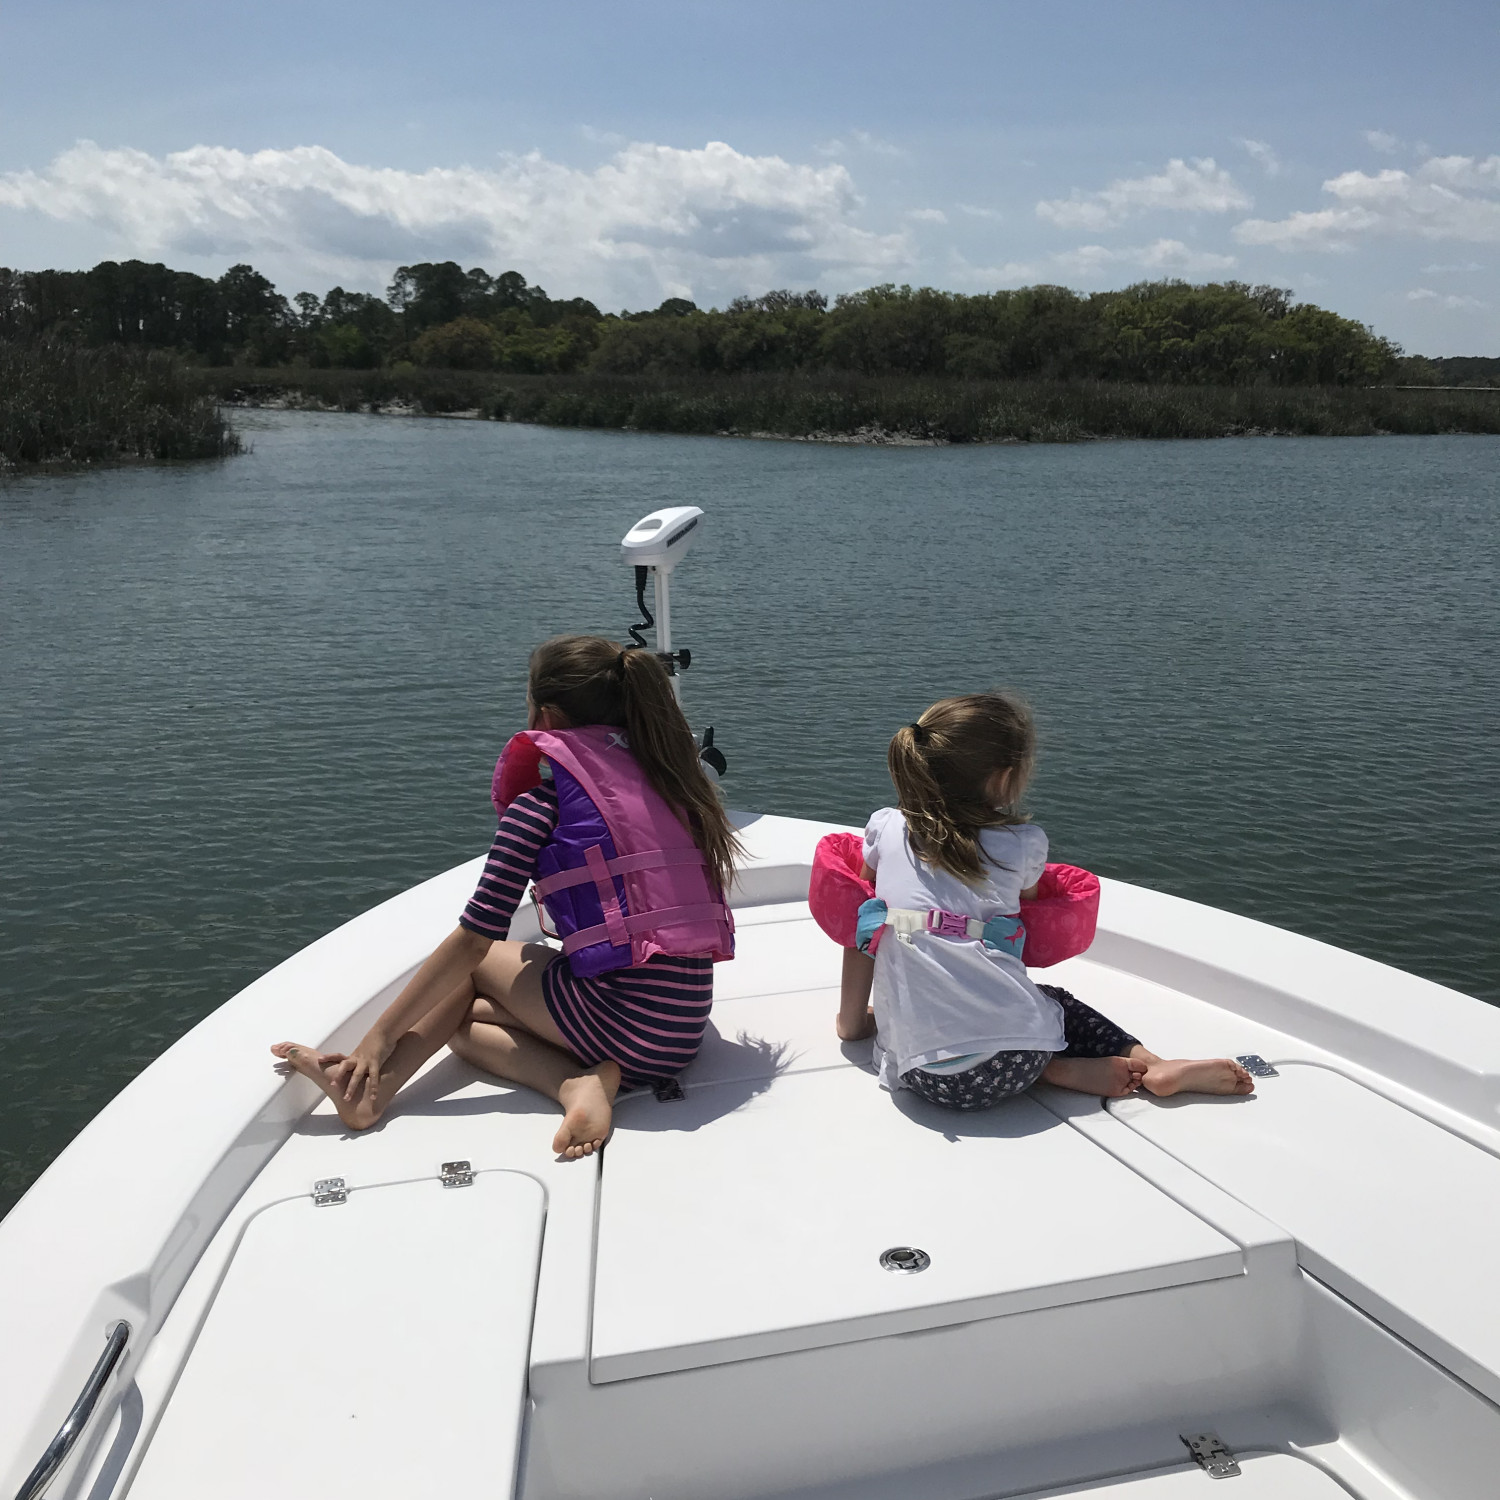 Title: Exploring new fishing spots - On board their Sportsman Masters 227 Bay Boat - Location: Beaufort SC. Participating in the Photo Contest #SportsmanApril2018